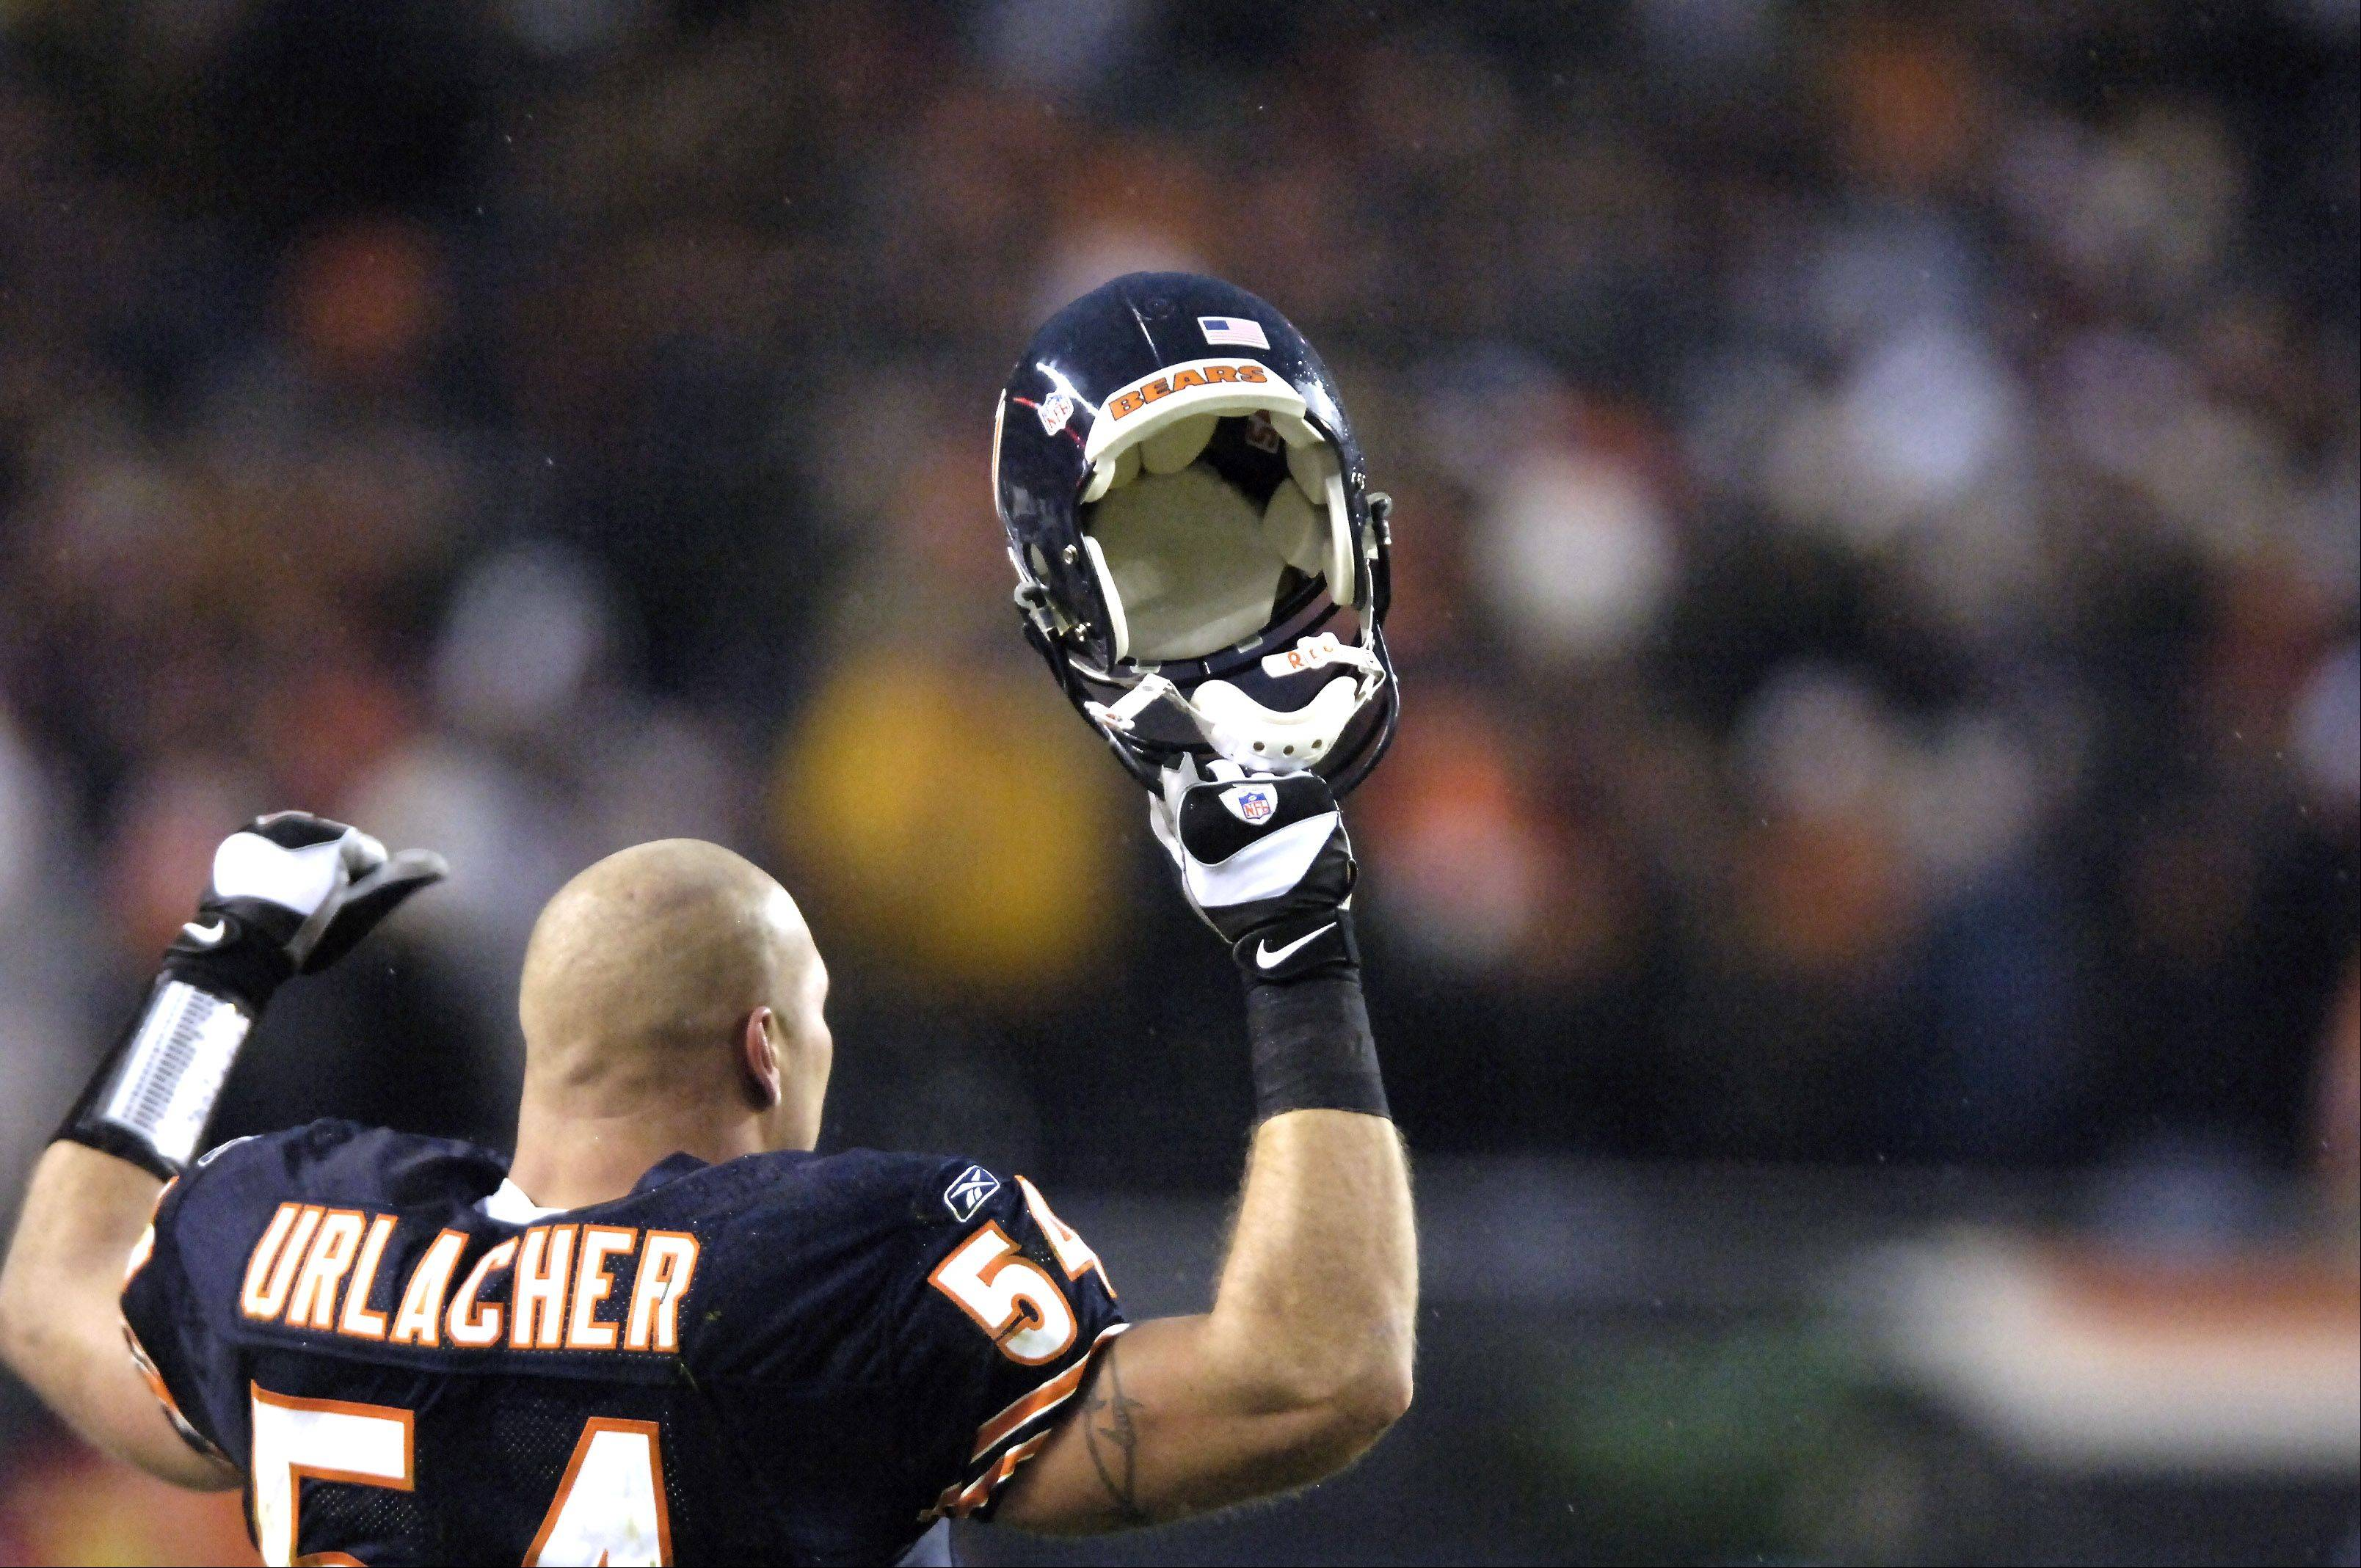 After 13 seasons in Chicago, Brian Urlacher turned down a $2 million offer to play one more season with the Bears.